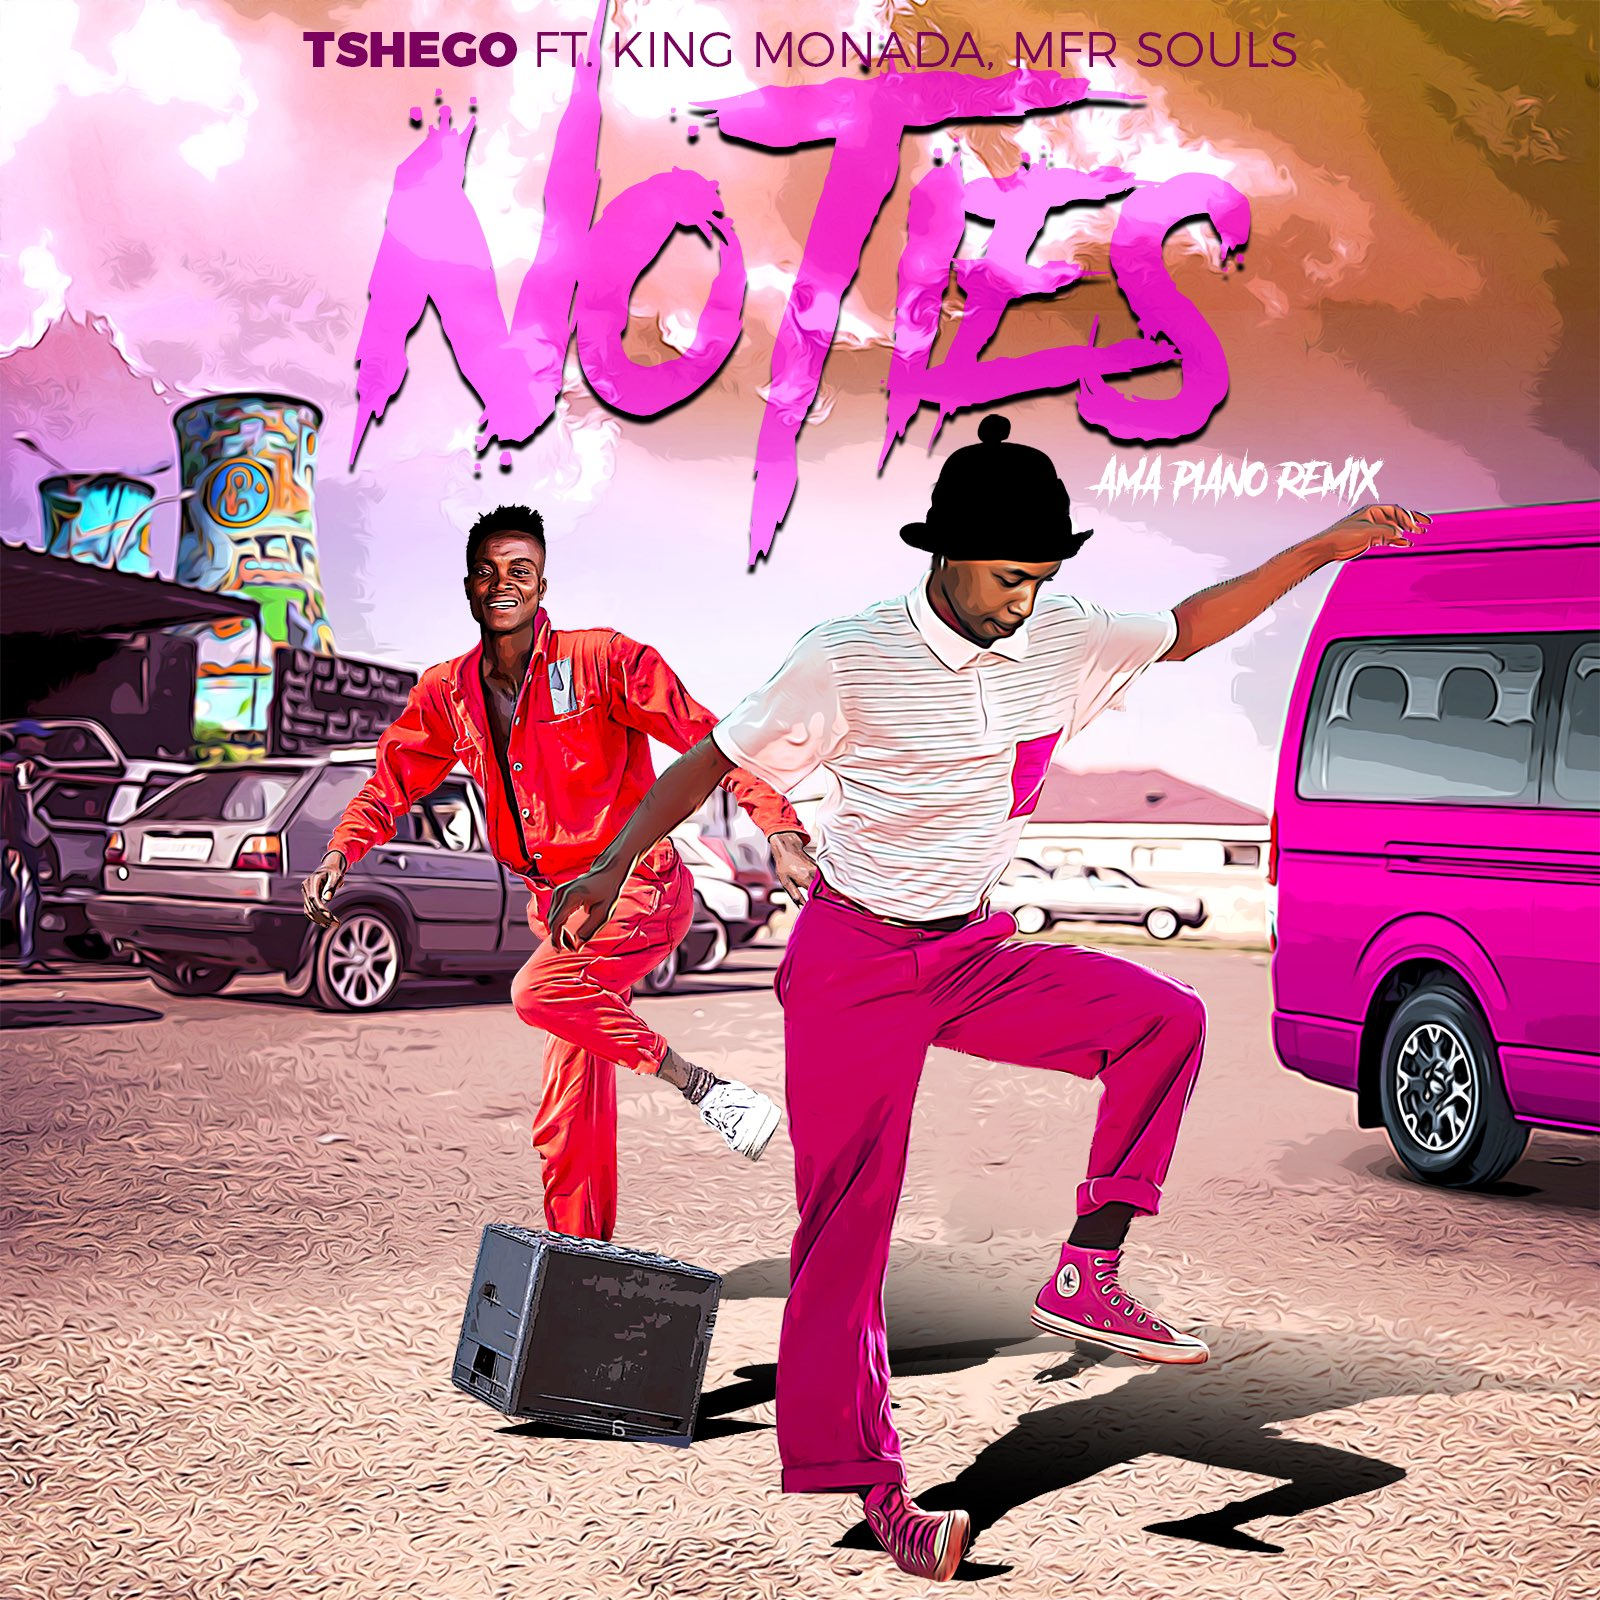 Tshego releases No Ties (Amapiano Remix), featuring King Monada and MFR Souls